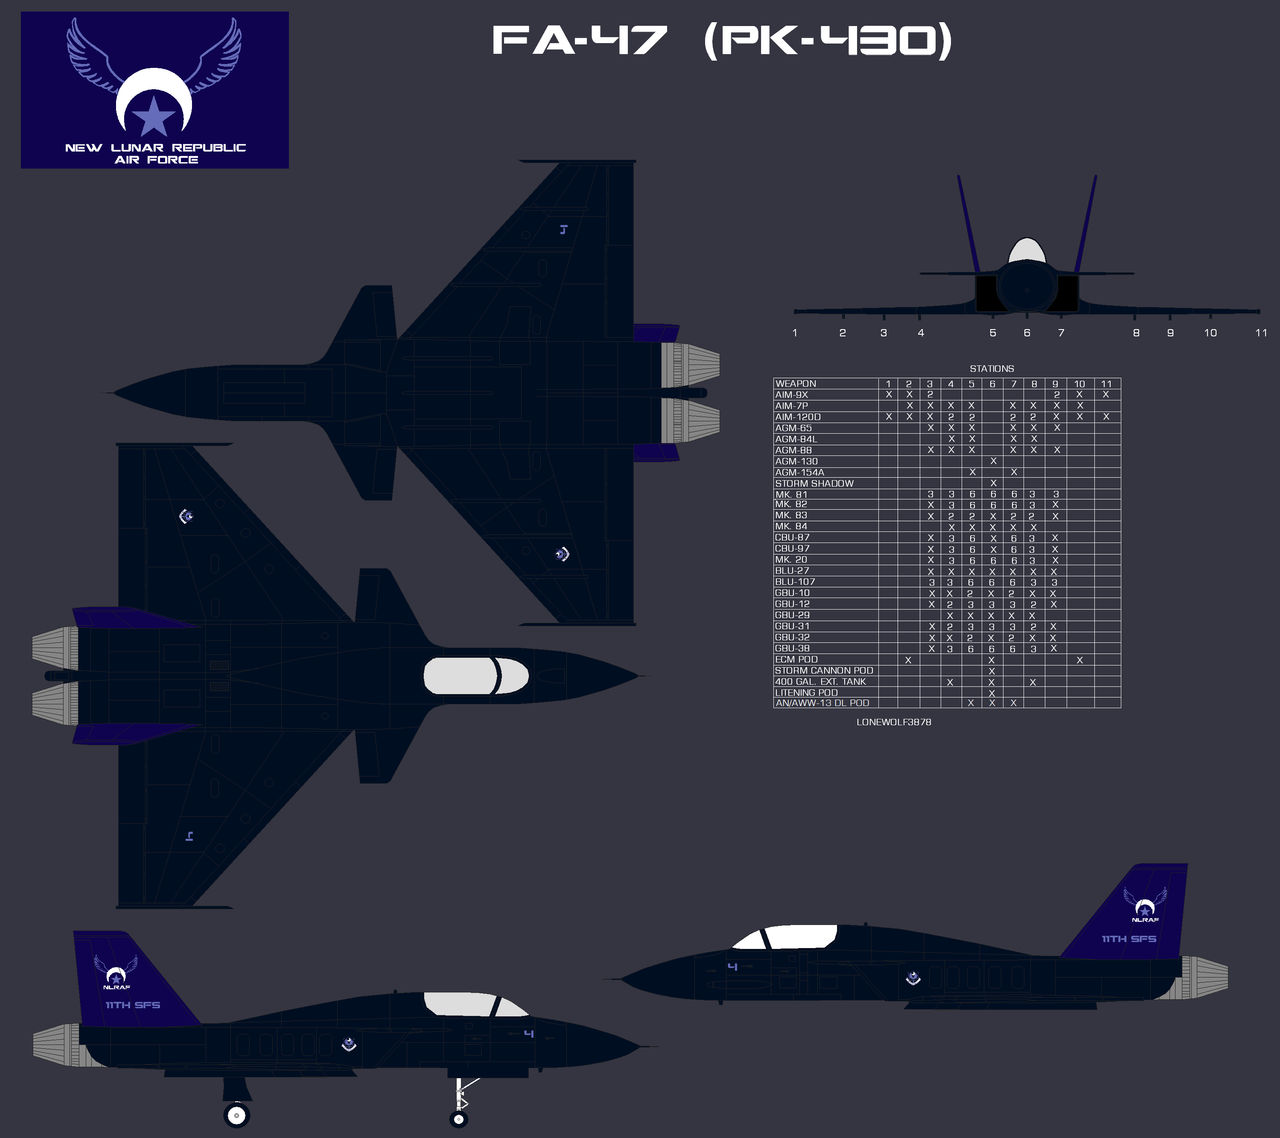 NLR Air Force PK-430 Fighter (updated) by lonewolf3878